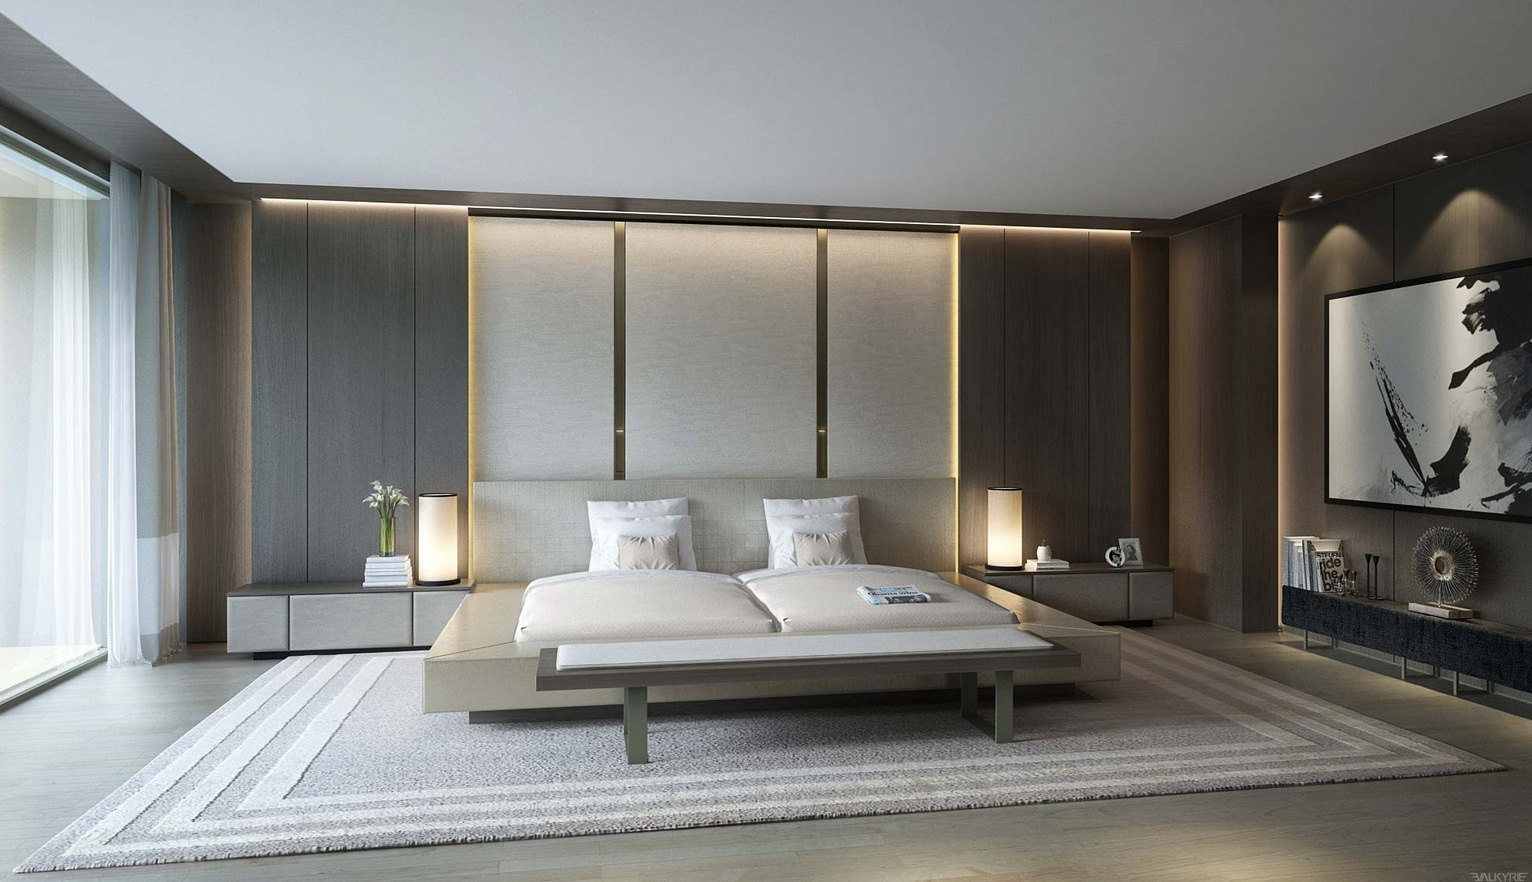 21 cool bedrooms for clean and simple design inspiration for Bedroom inspiration